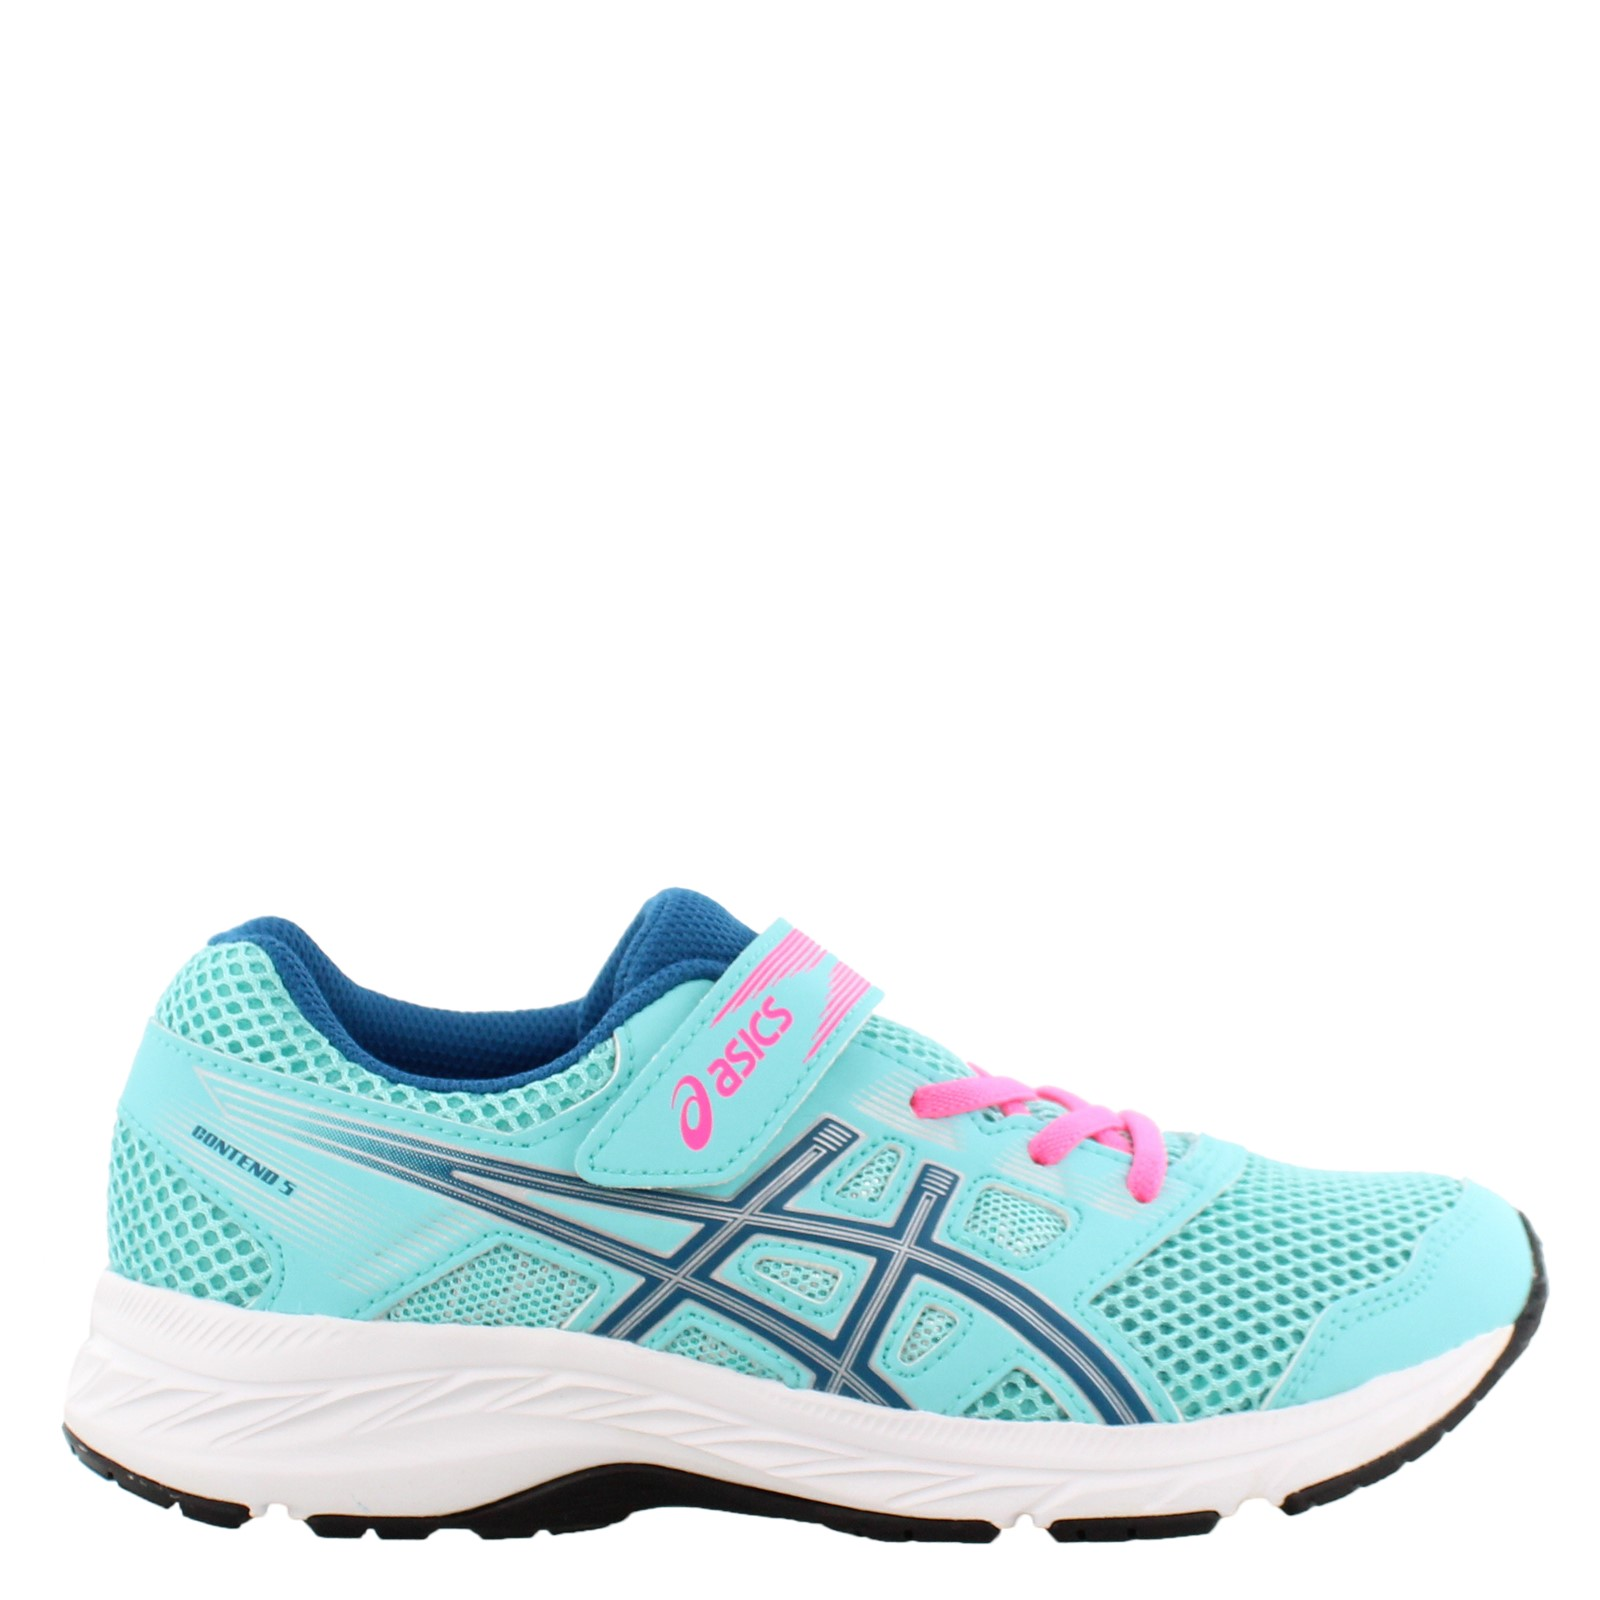 Girl's Asics, Gel Contend 5 PS Sneaker - Little Kid